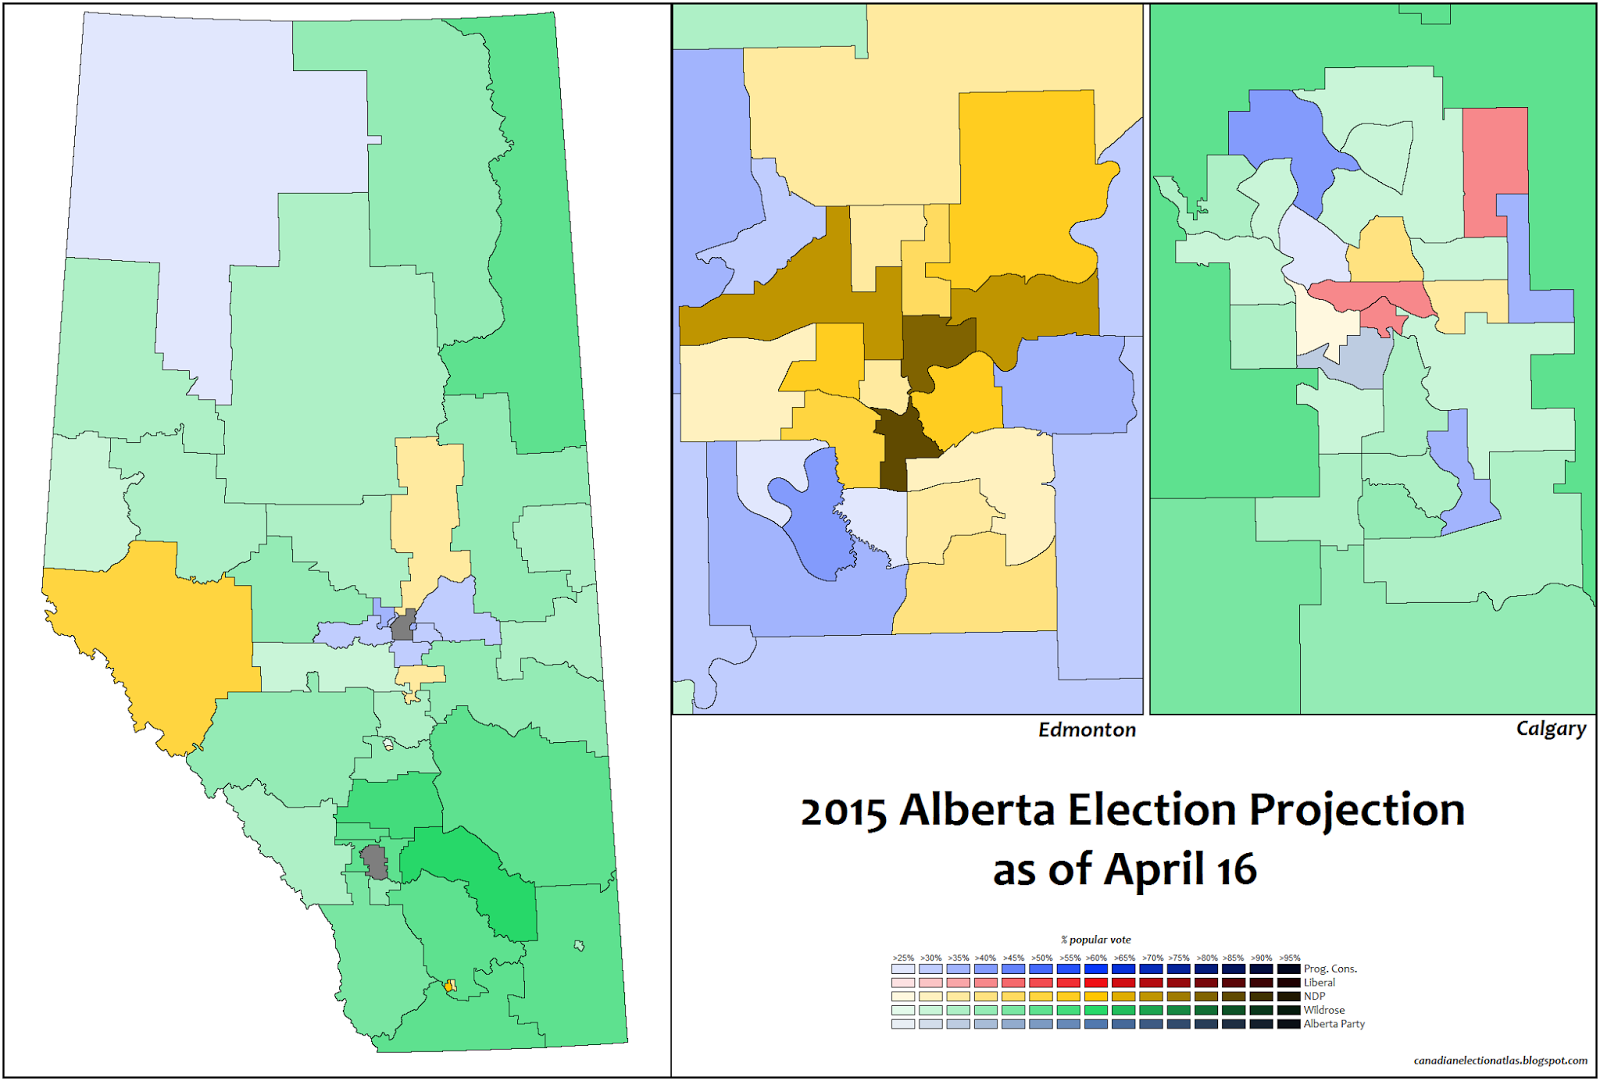 Alberta Is Easily Canada S Most Conservative Province Or At Least Has That Reputation So The Surge Of The Social Democratic Ndp Has Come As Quite The